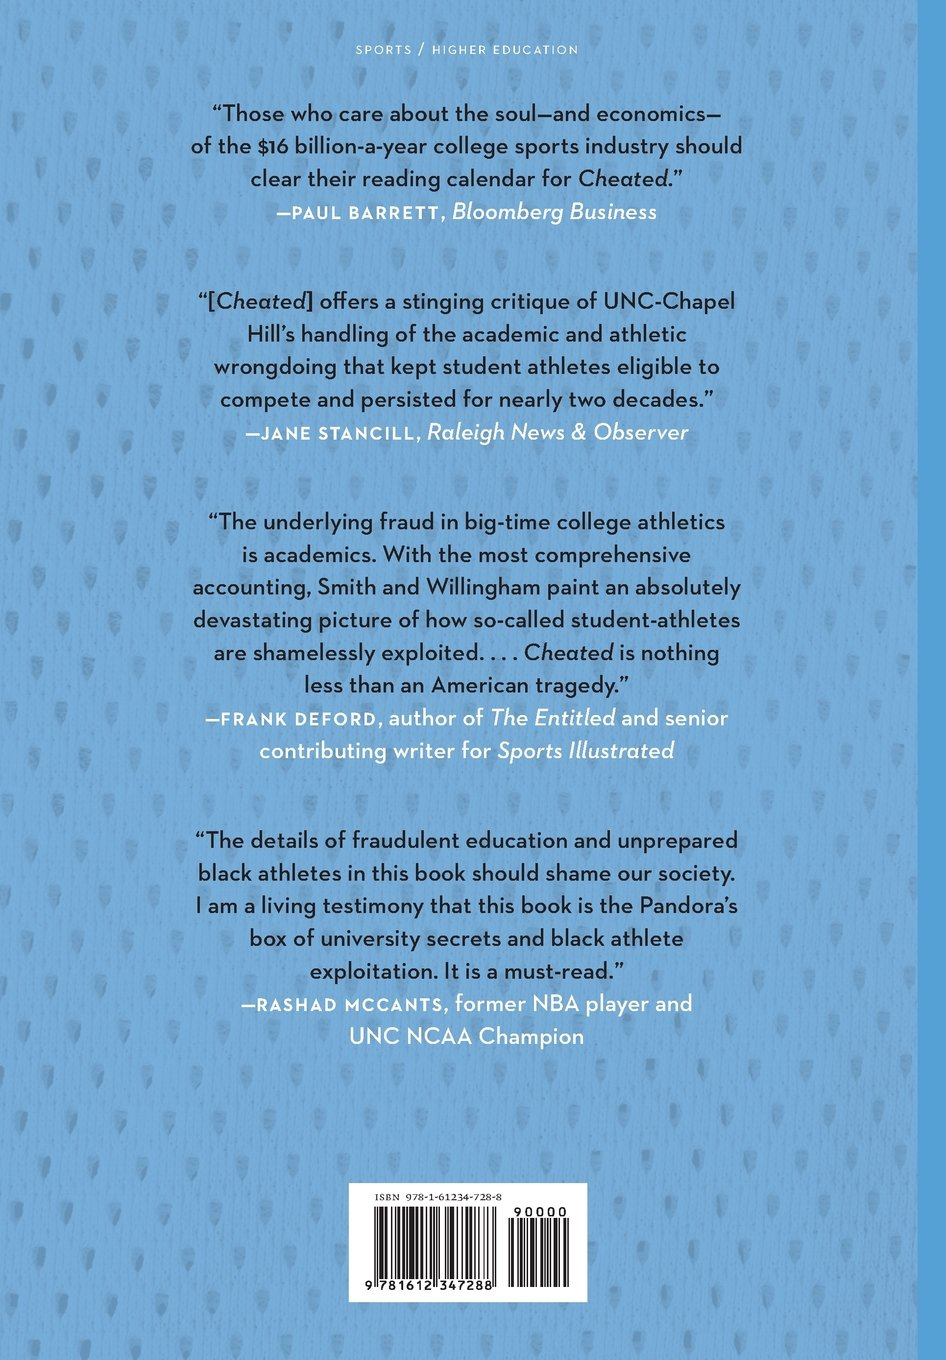 Unc Academic Calendar.Amazon Com Cheated The Unc Scandal The Education Of Athletes And